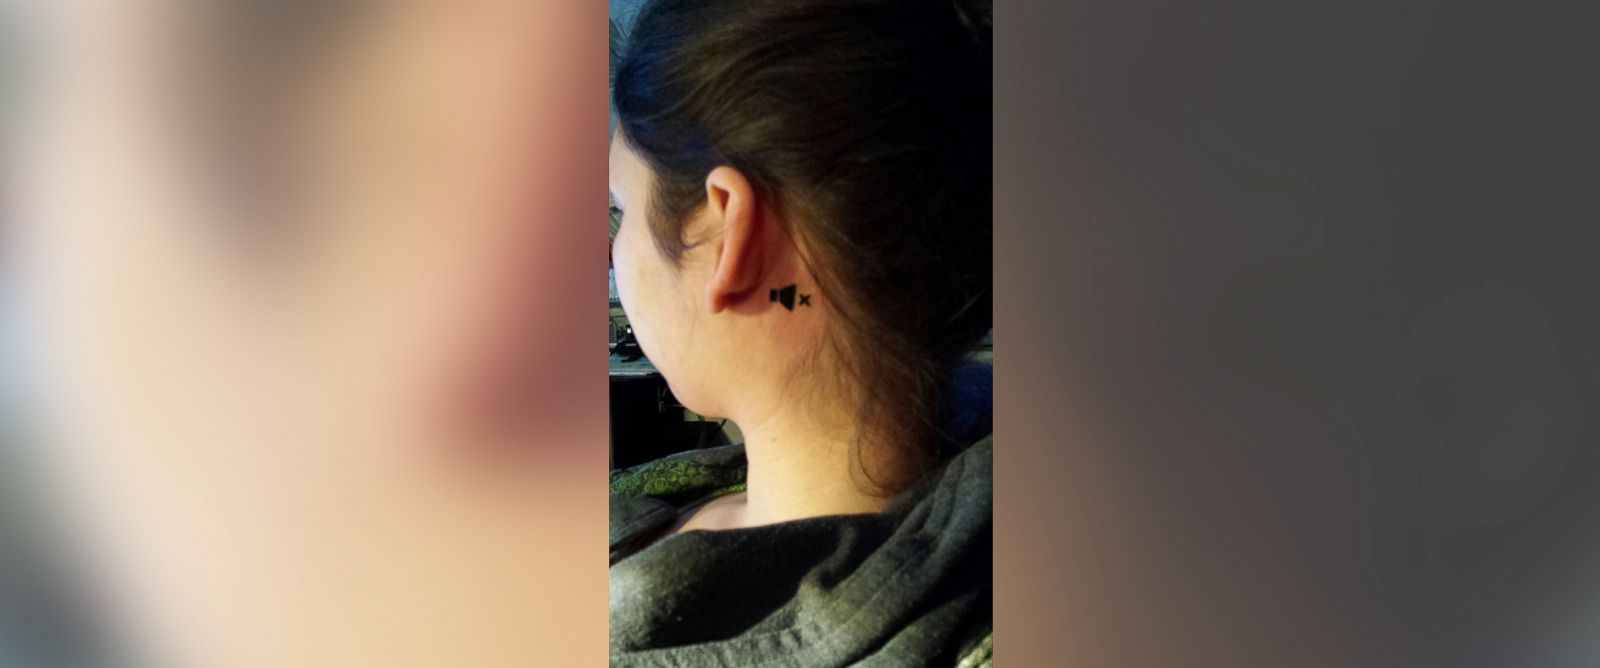 PHOTO: Elisa Menzels tattoo behind her left ear, telling strangers shes deaf in one ear, has gone viral.